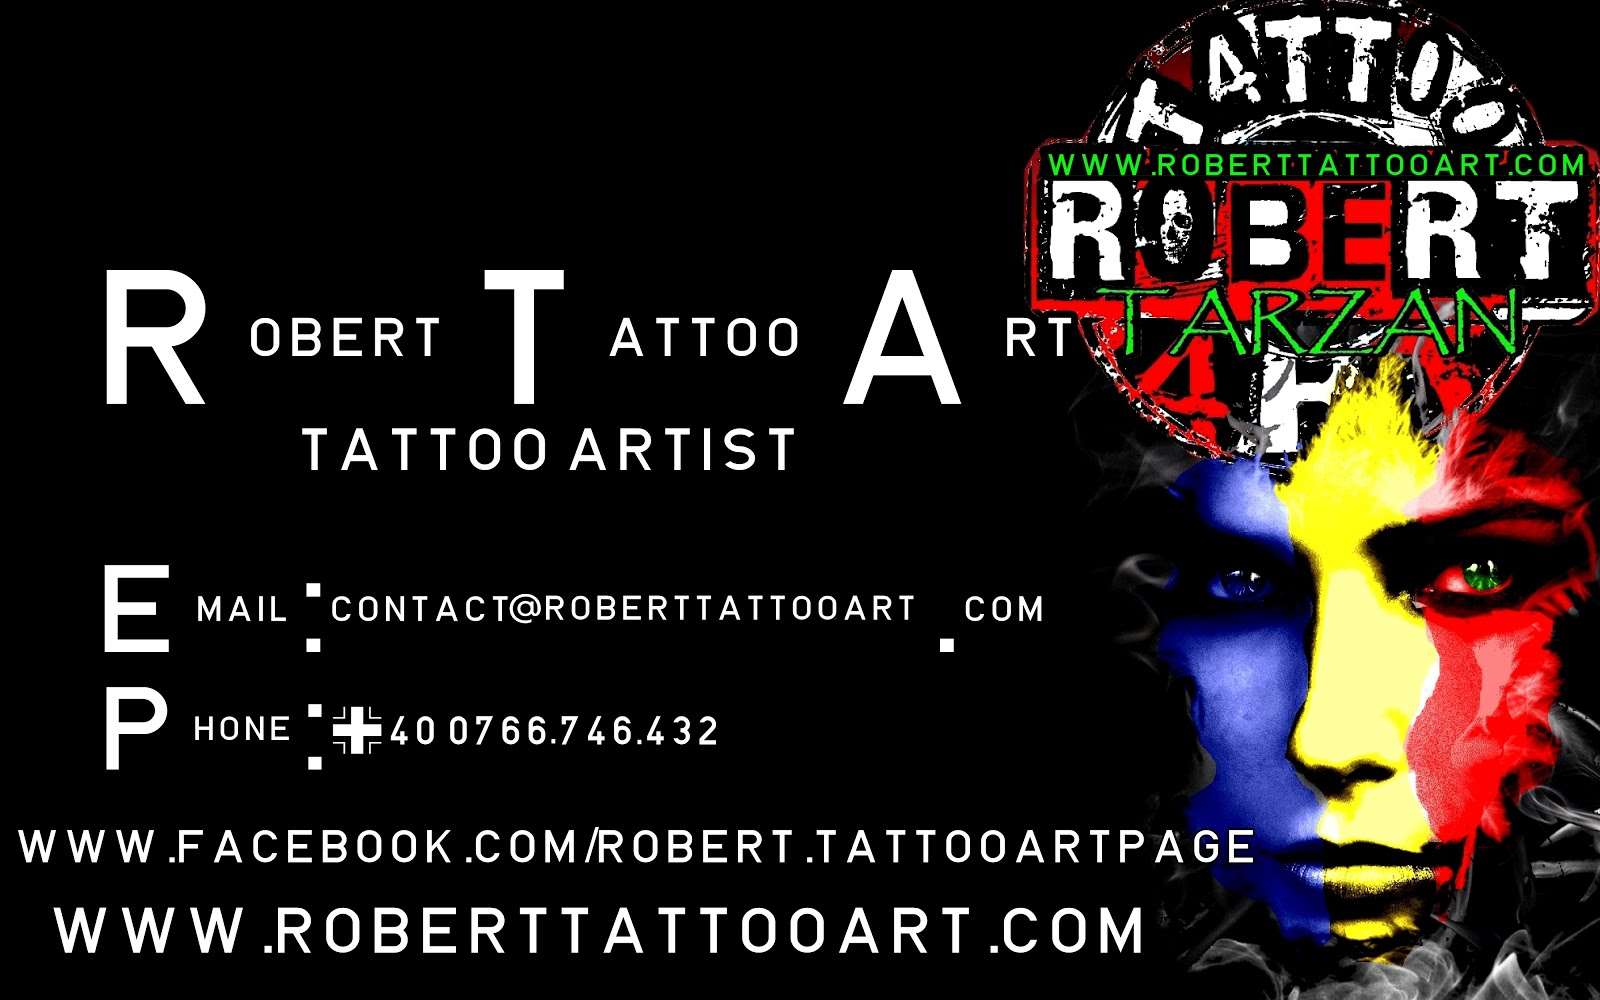 Robert Tattoo Art